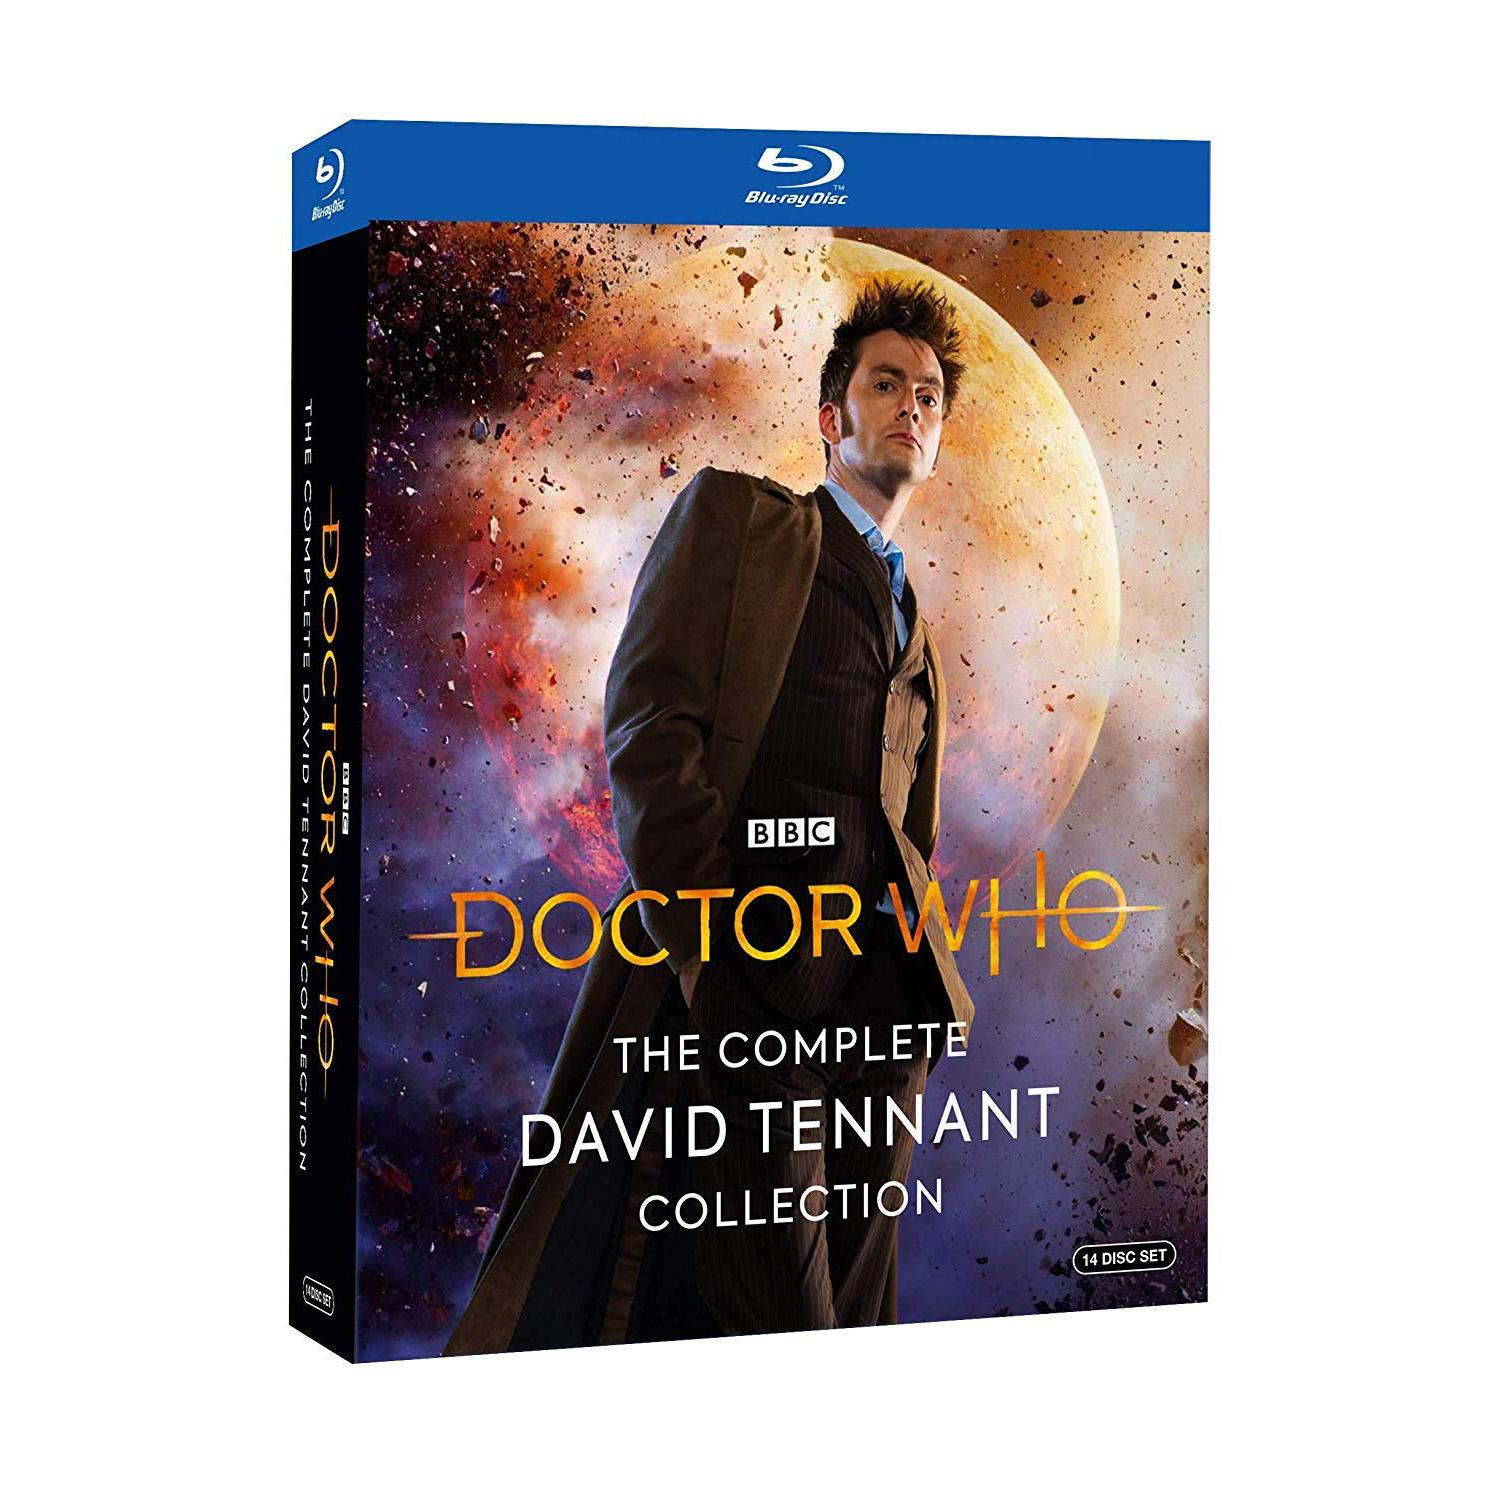 Doctor Who The Complete David Tennant Collection Blu-ray for $19.99